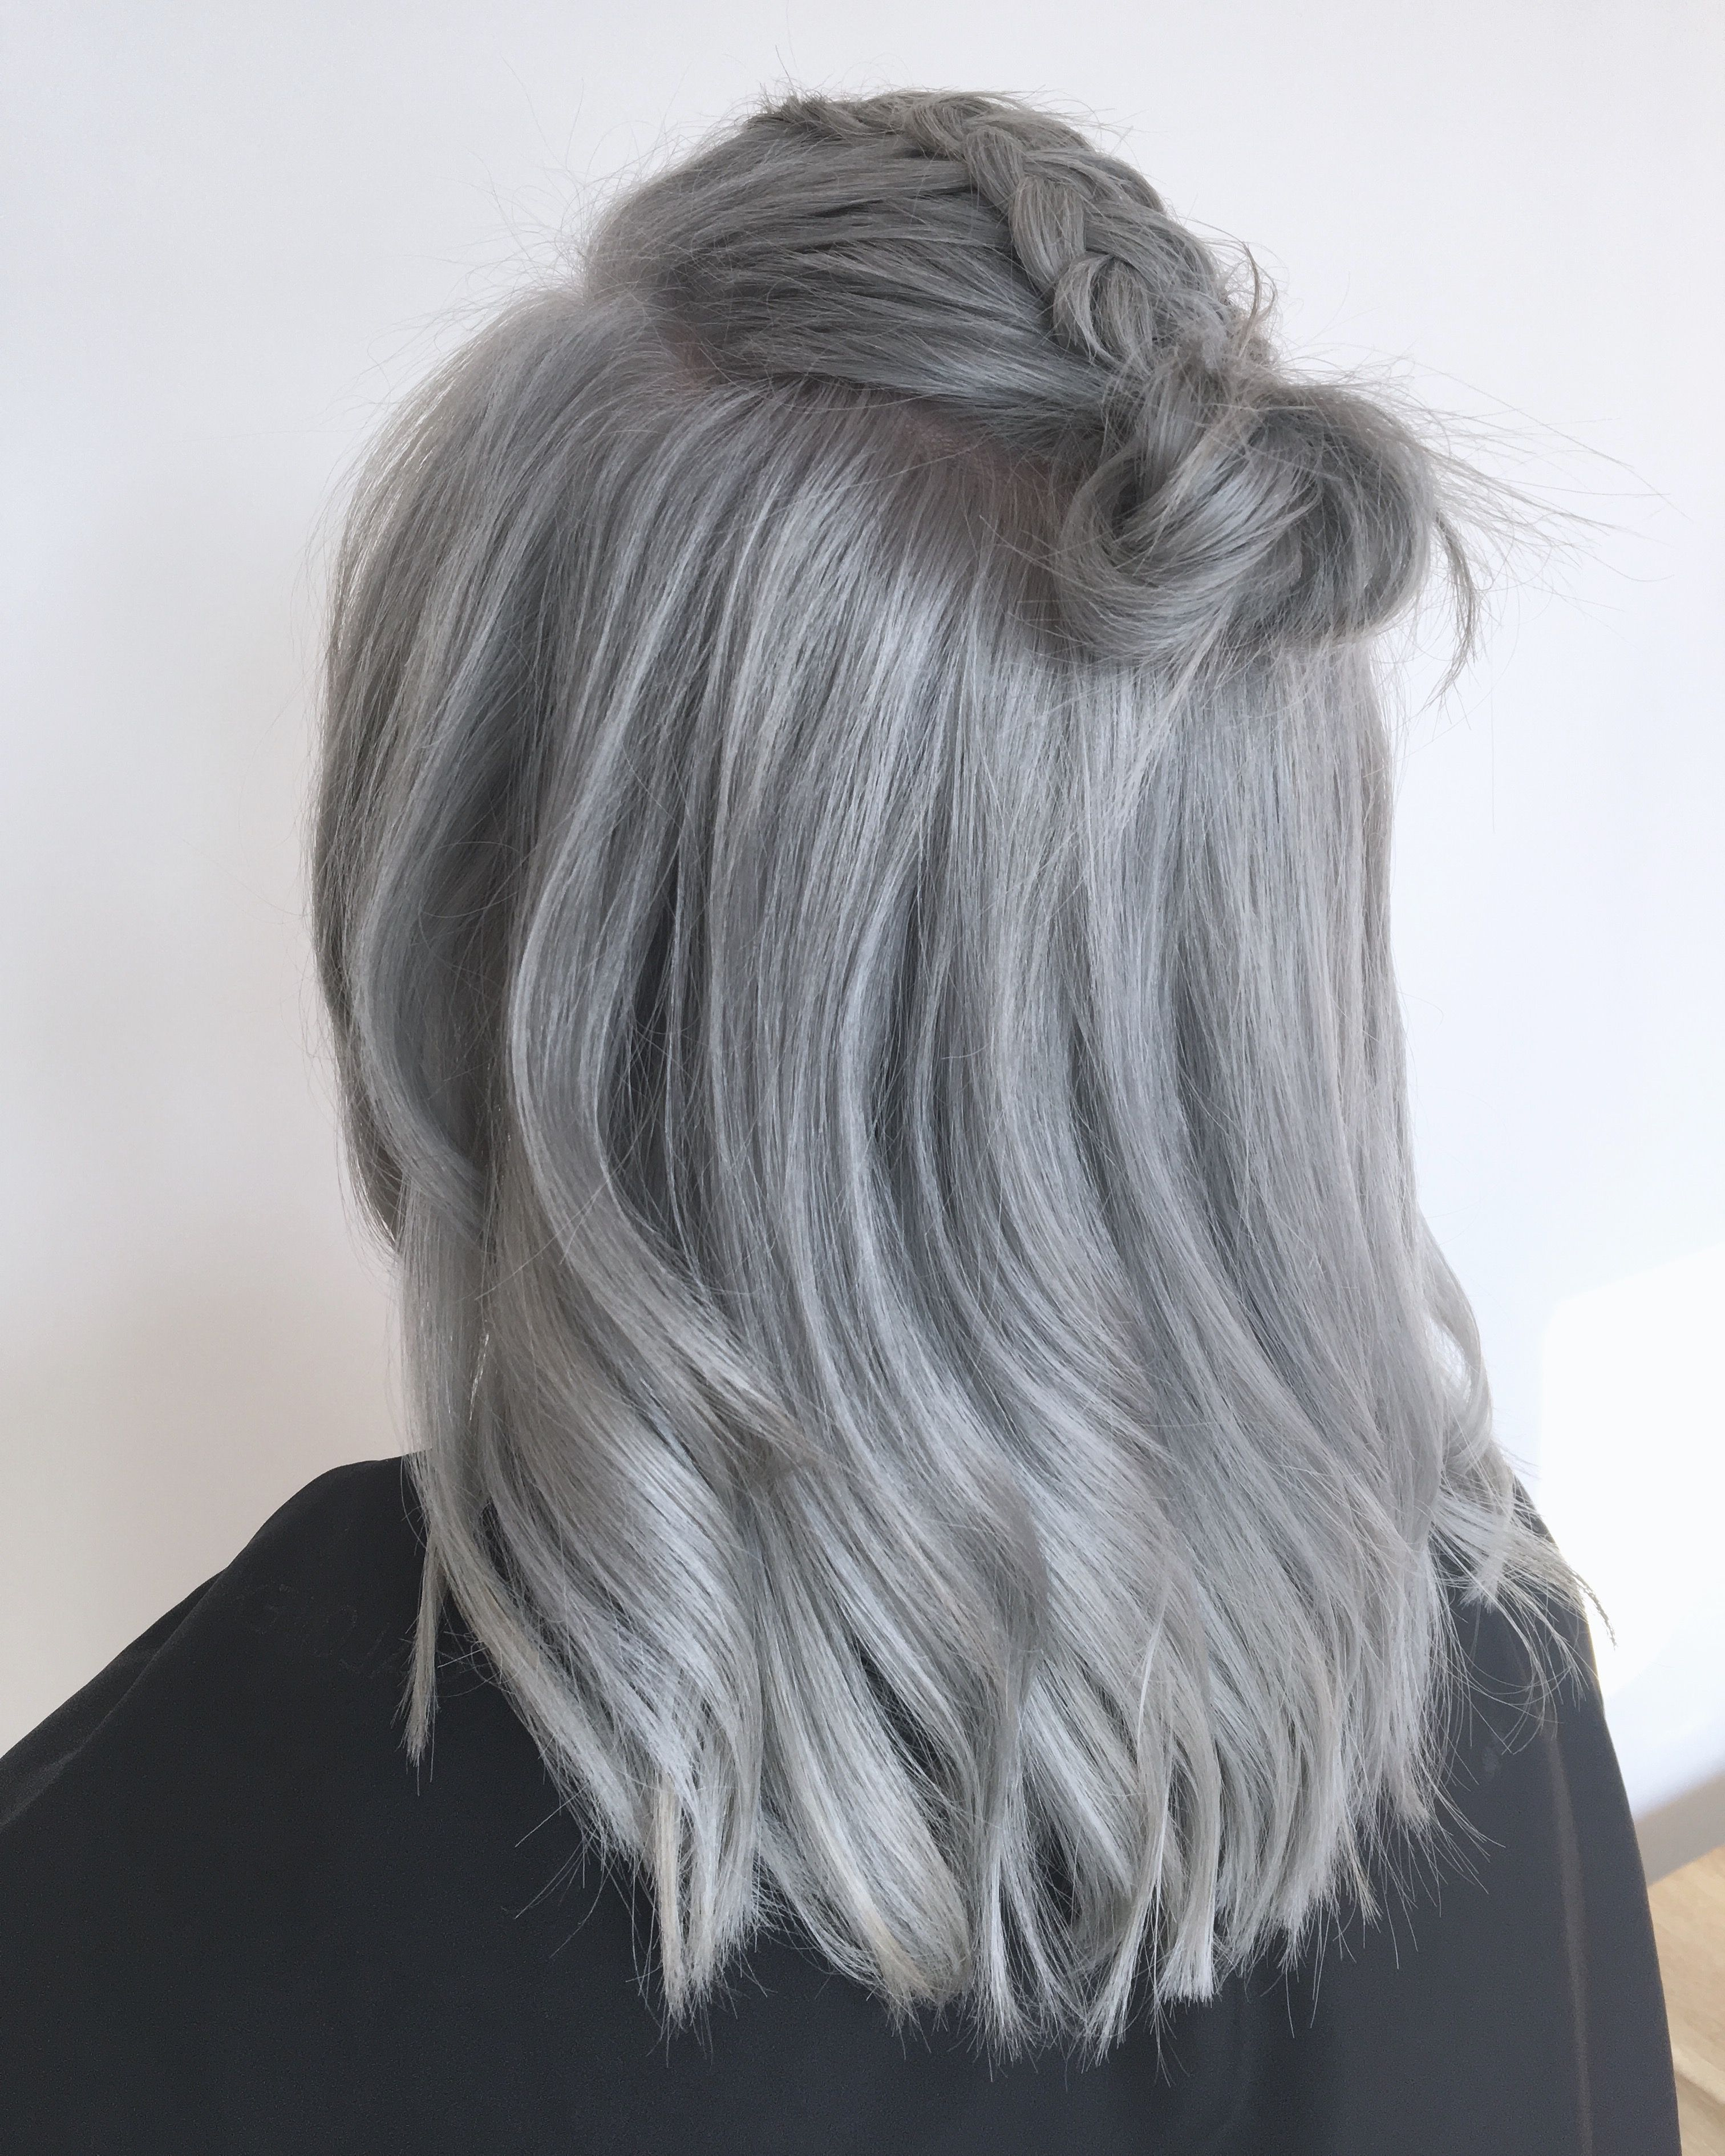 Grey Hair Silver Hair Bun Follow Us On Instagram Www Sjiekkappers Nl Silver Hair Color Silver Grey Hair Hair Styles